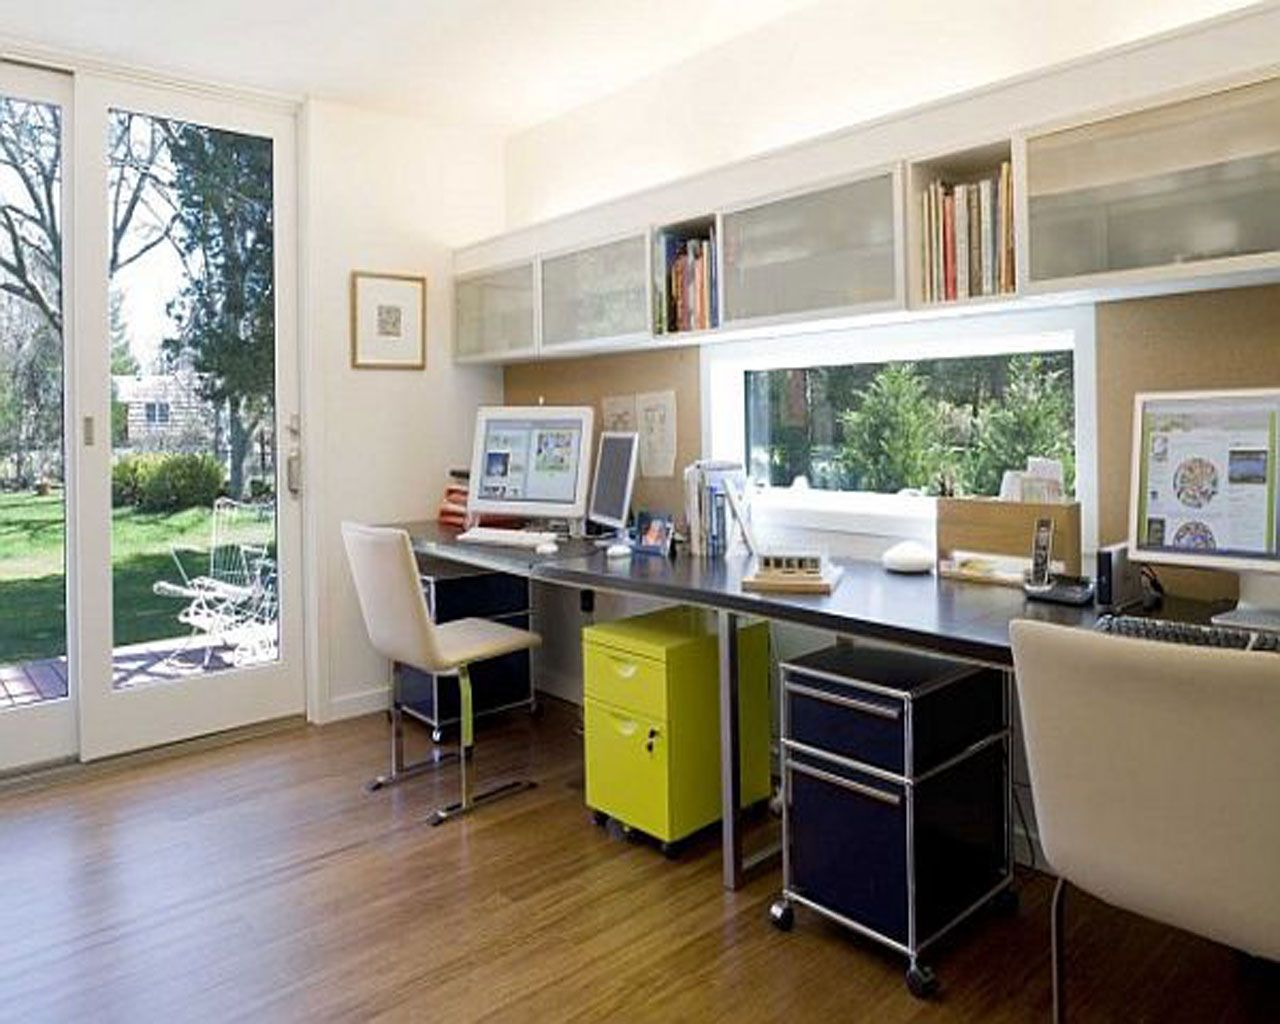 Phenomenal 17 Best Images About Classy Work Spaces On Pinterest Home Office Largest Home Design Picture Inspirations Pitcheantrous